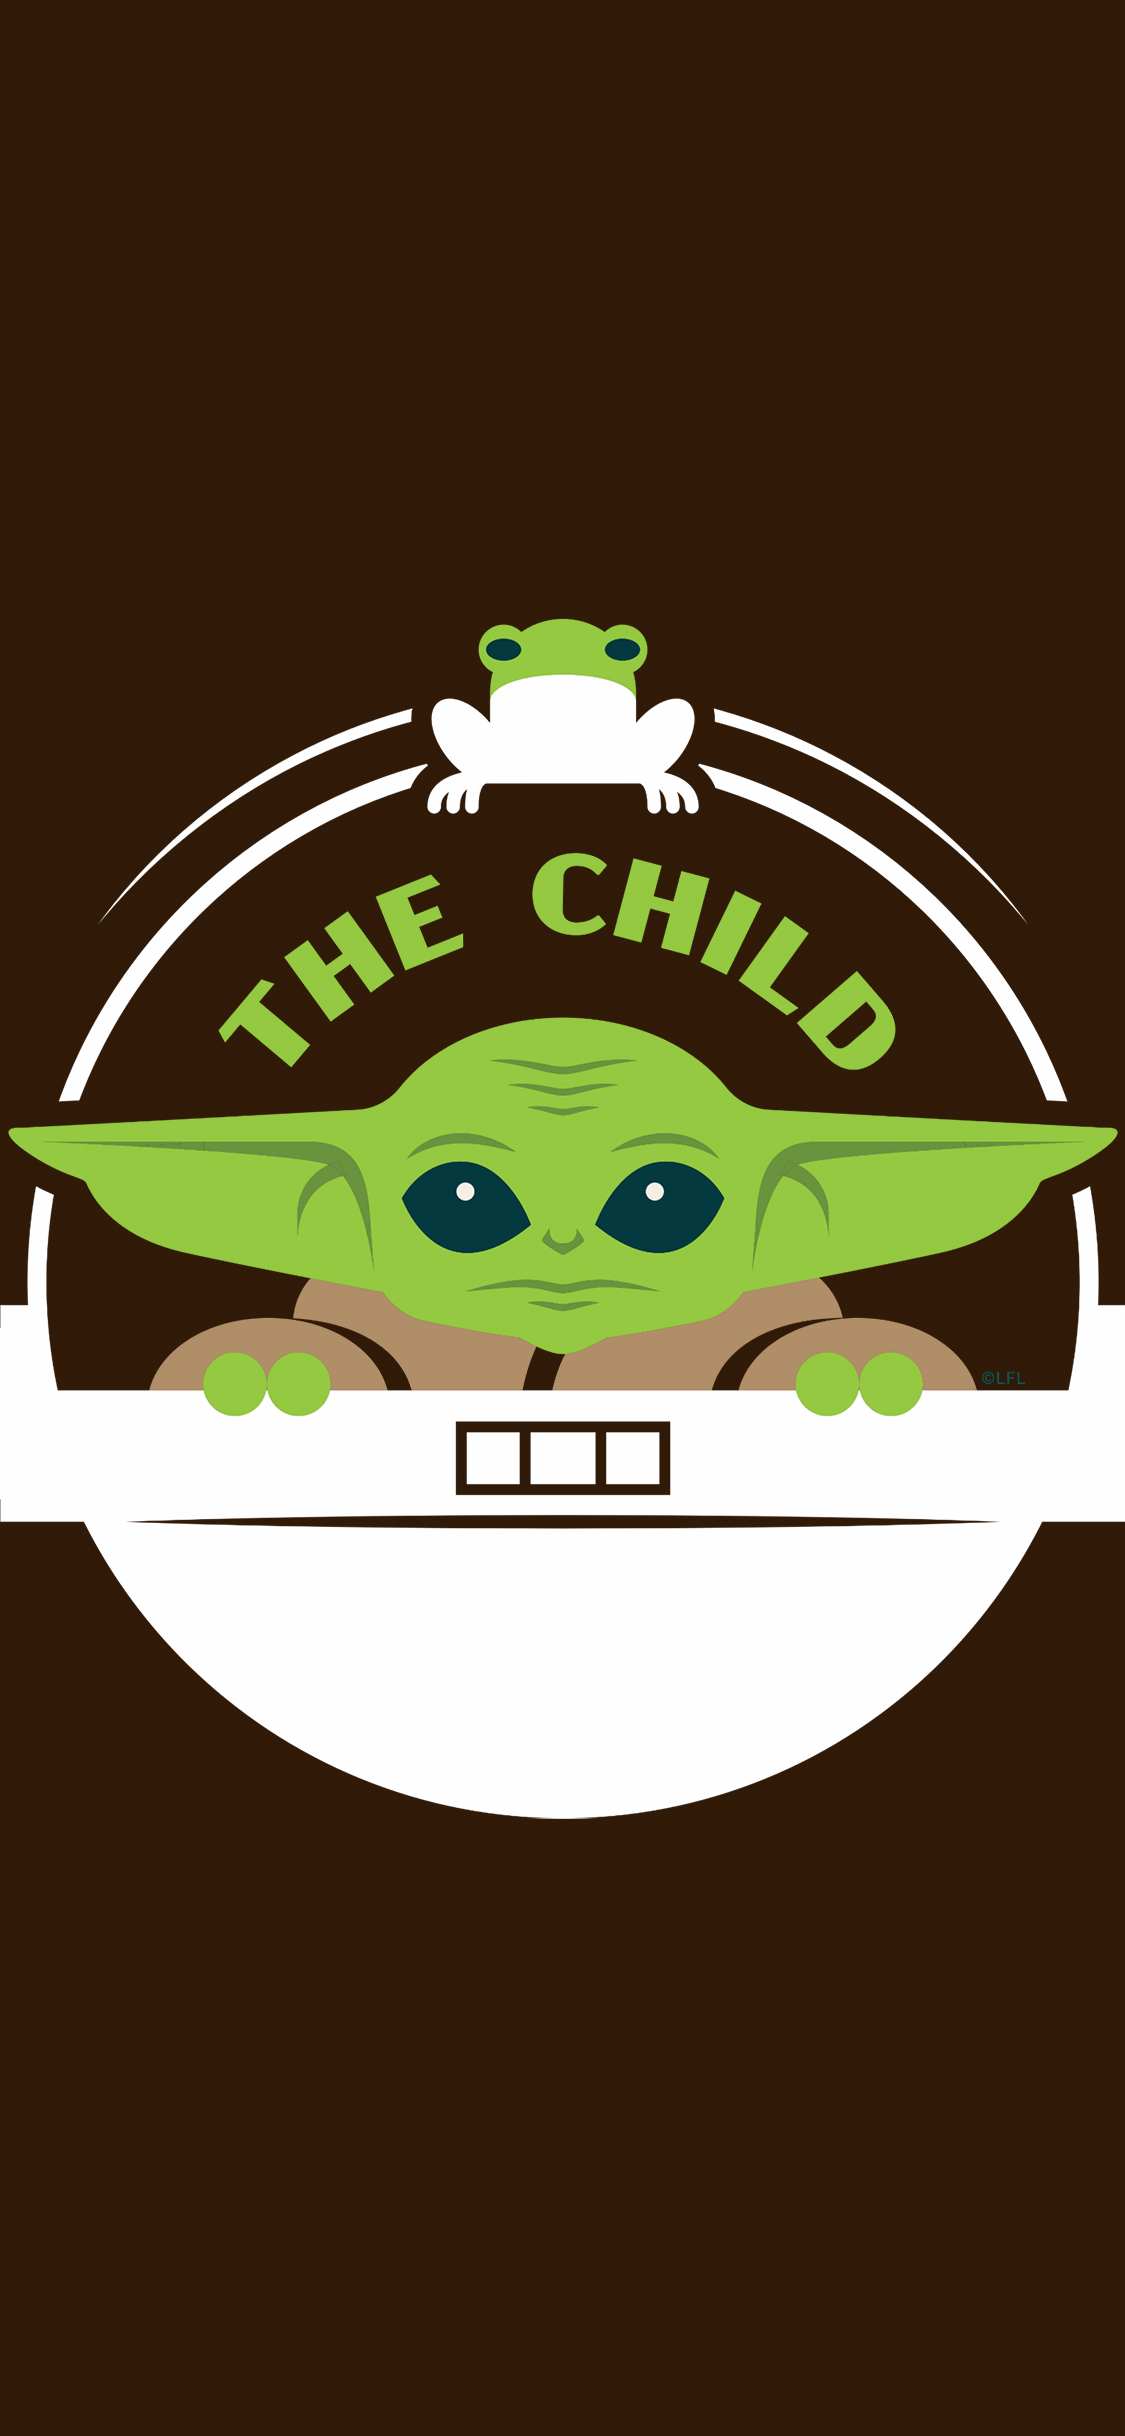 Baby Yoda iphone X wallpaper collection - YouLoveIt.com